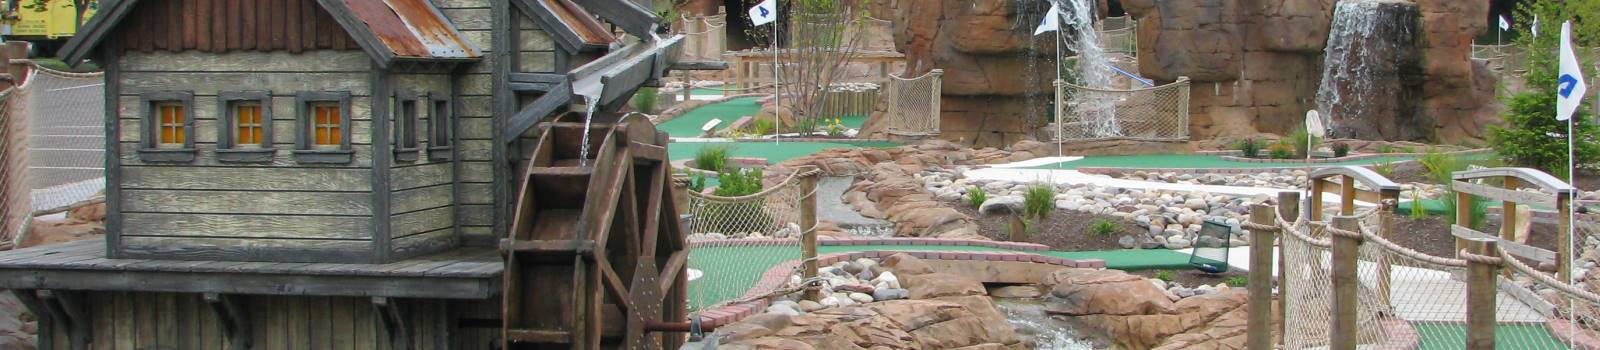 hole 3 mini golf course design nj